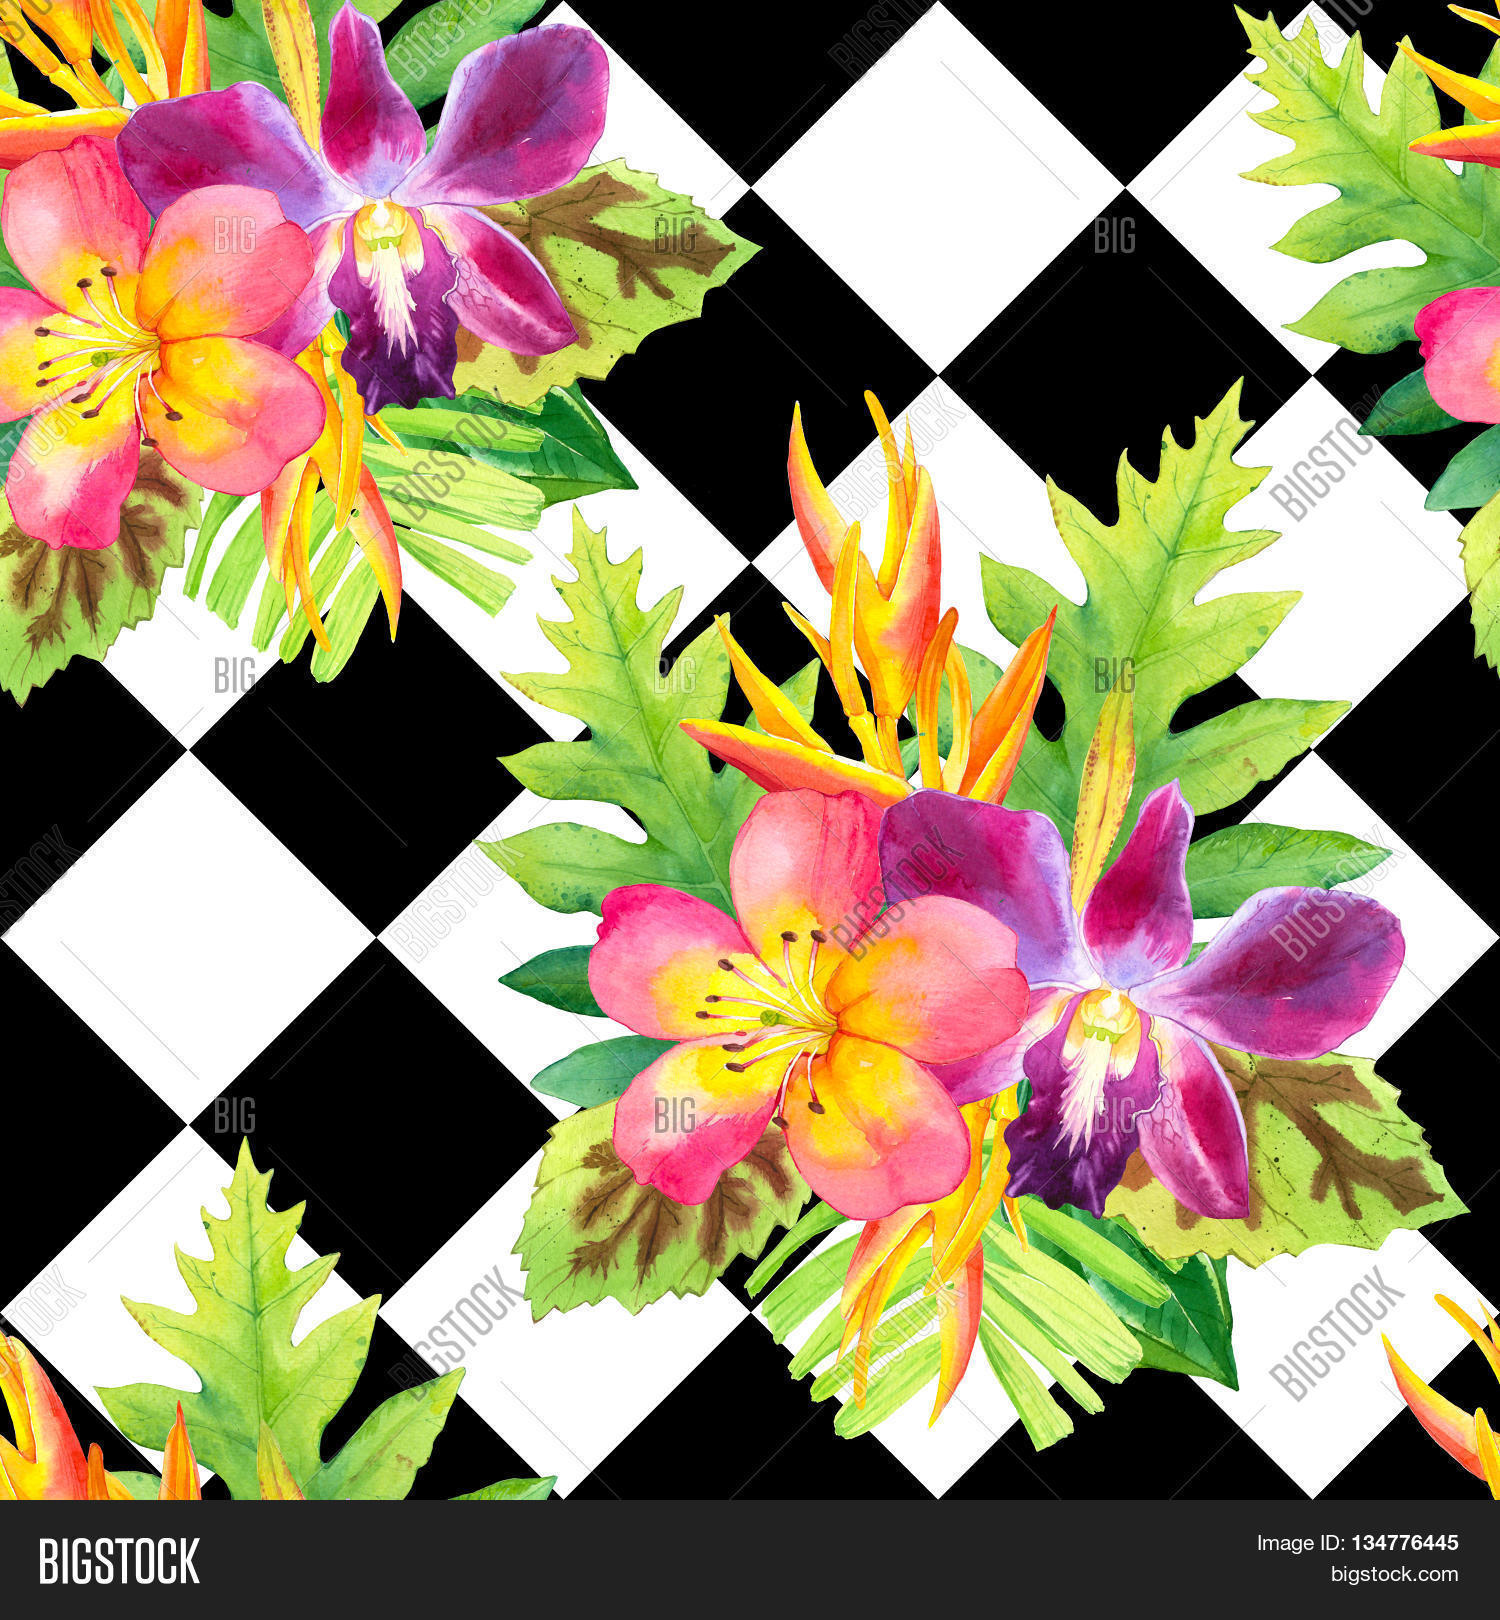 Beautiful bouquet on black and white background with geometric.